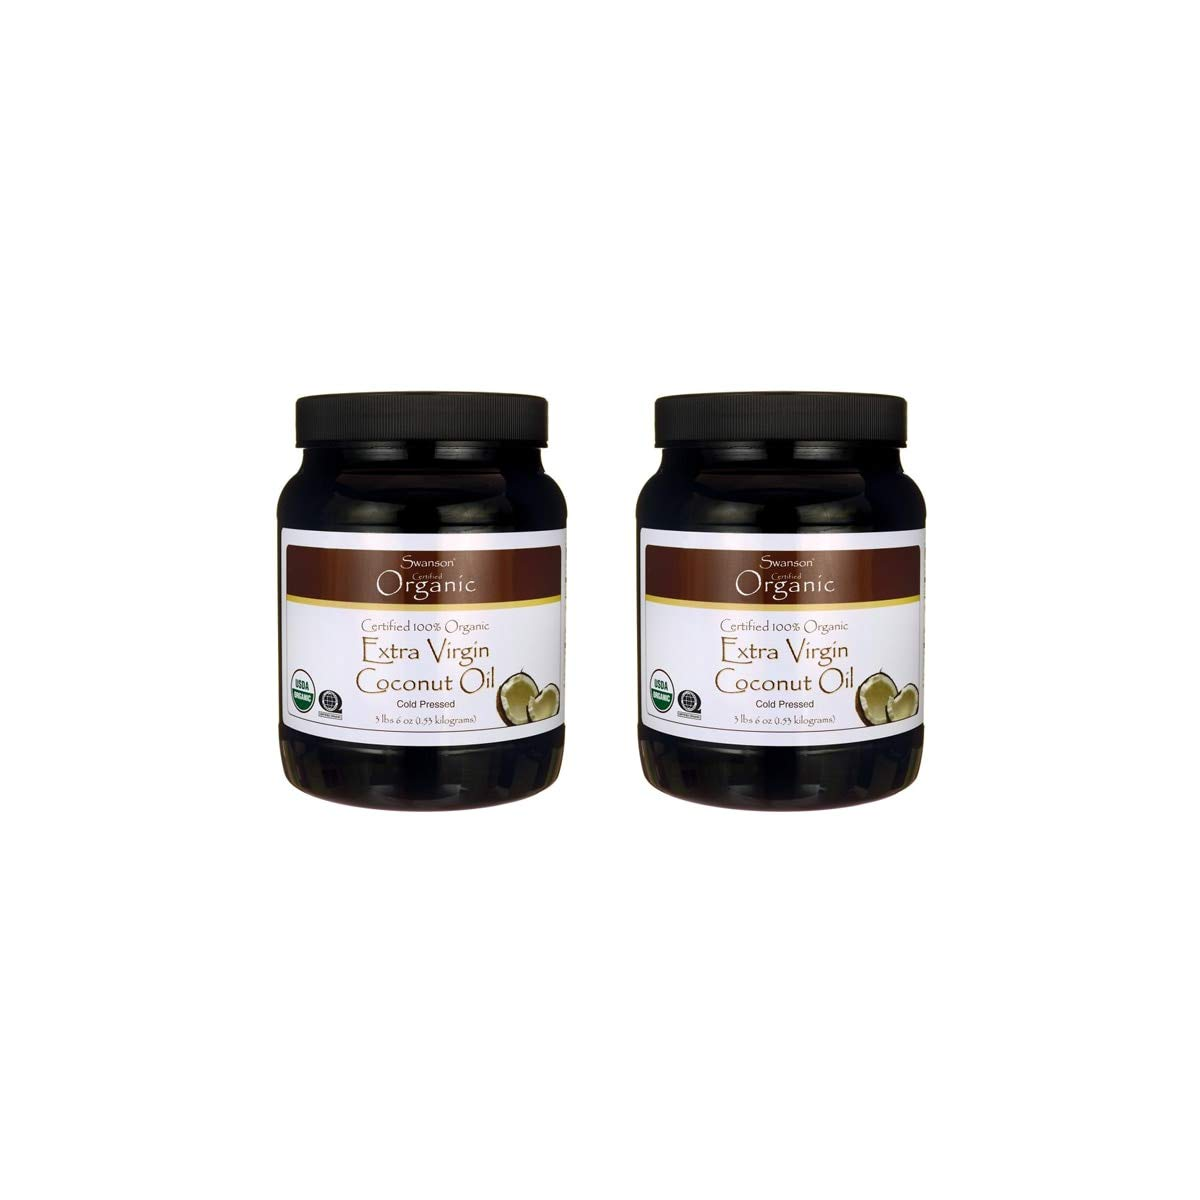 Swanson 100% Certified Organic Coconut Oil Cooking Baking Frying Beauty EFAs MCTs 3 lbs 6 Ounces (1.53 kg) Solid Oil (2 Pack)